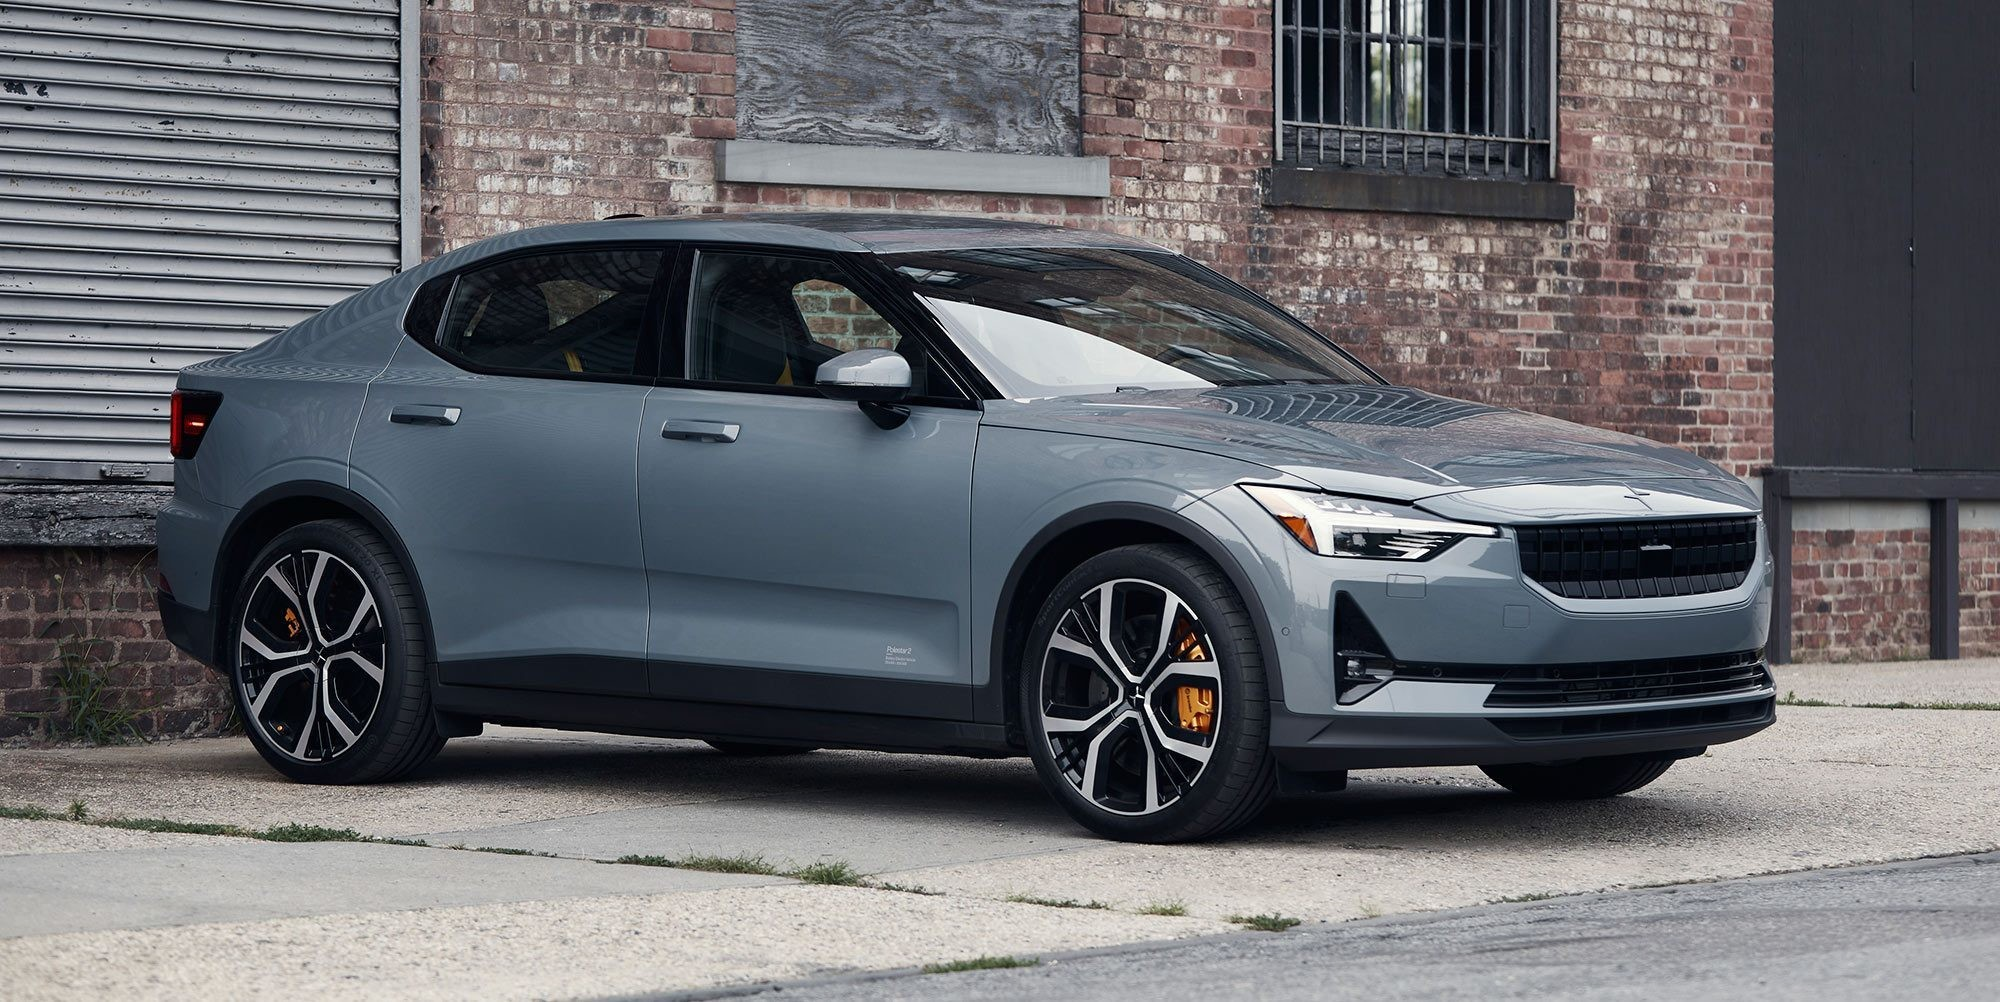 Polestar recalls almost all Polestar 2 electric cars over inverter and battery issues - Electrek